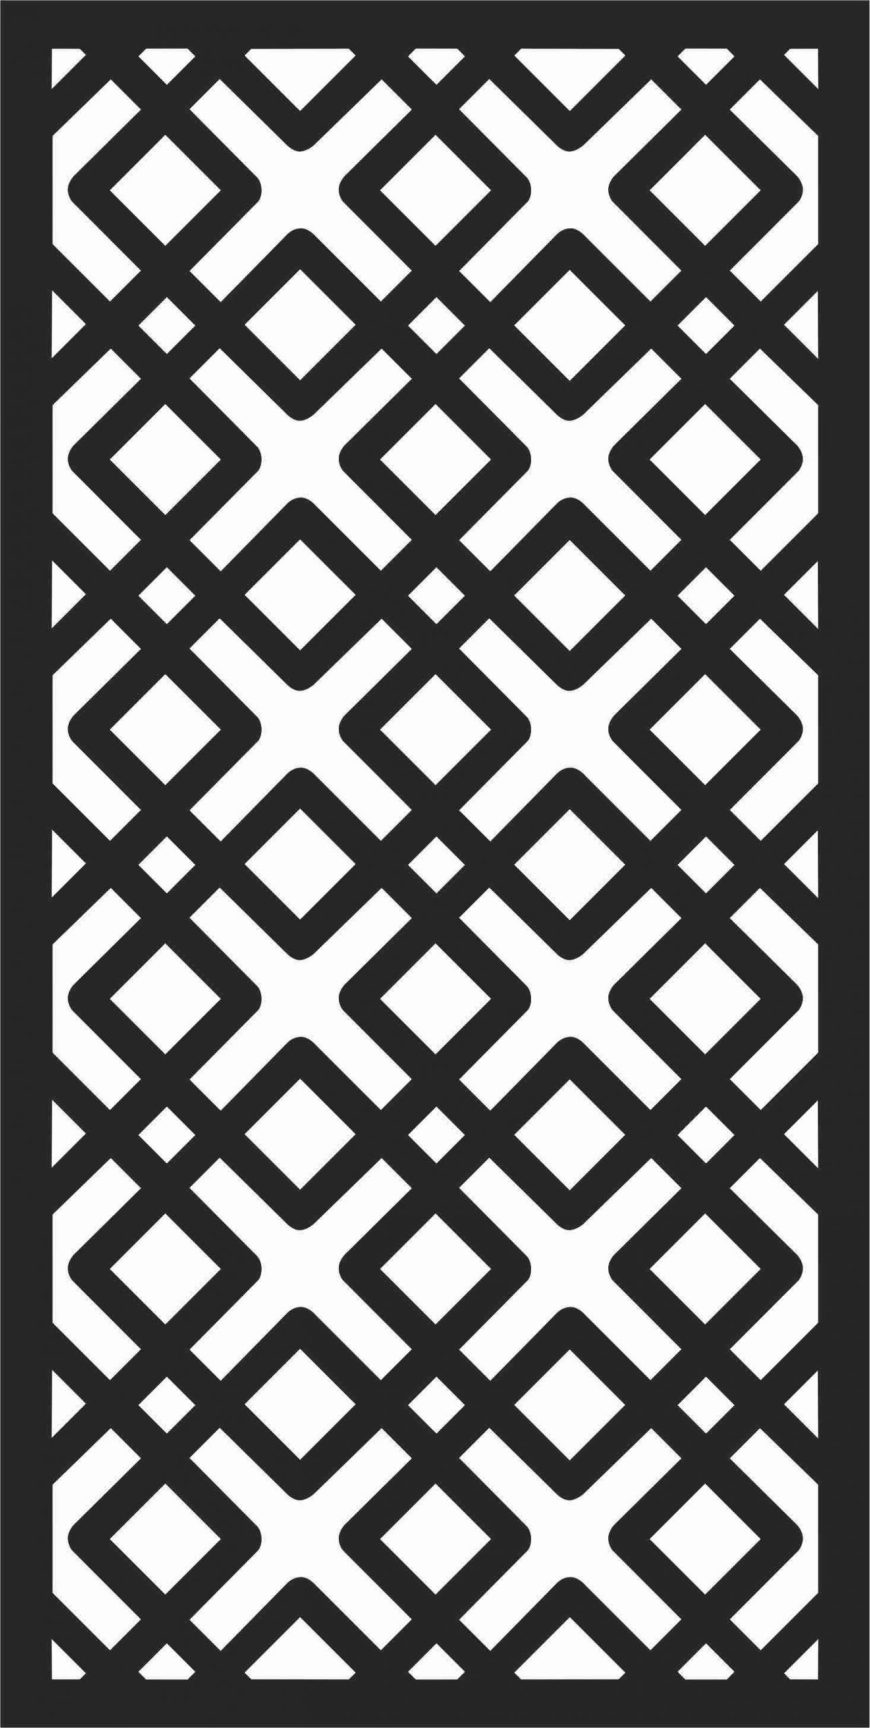 Decorative Screen Patterns For Laser Cutting 184 Free DXF File